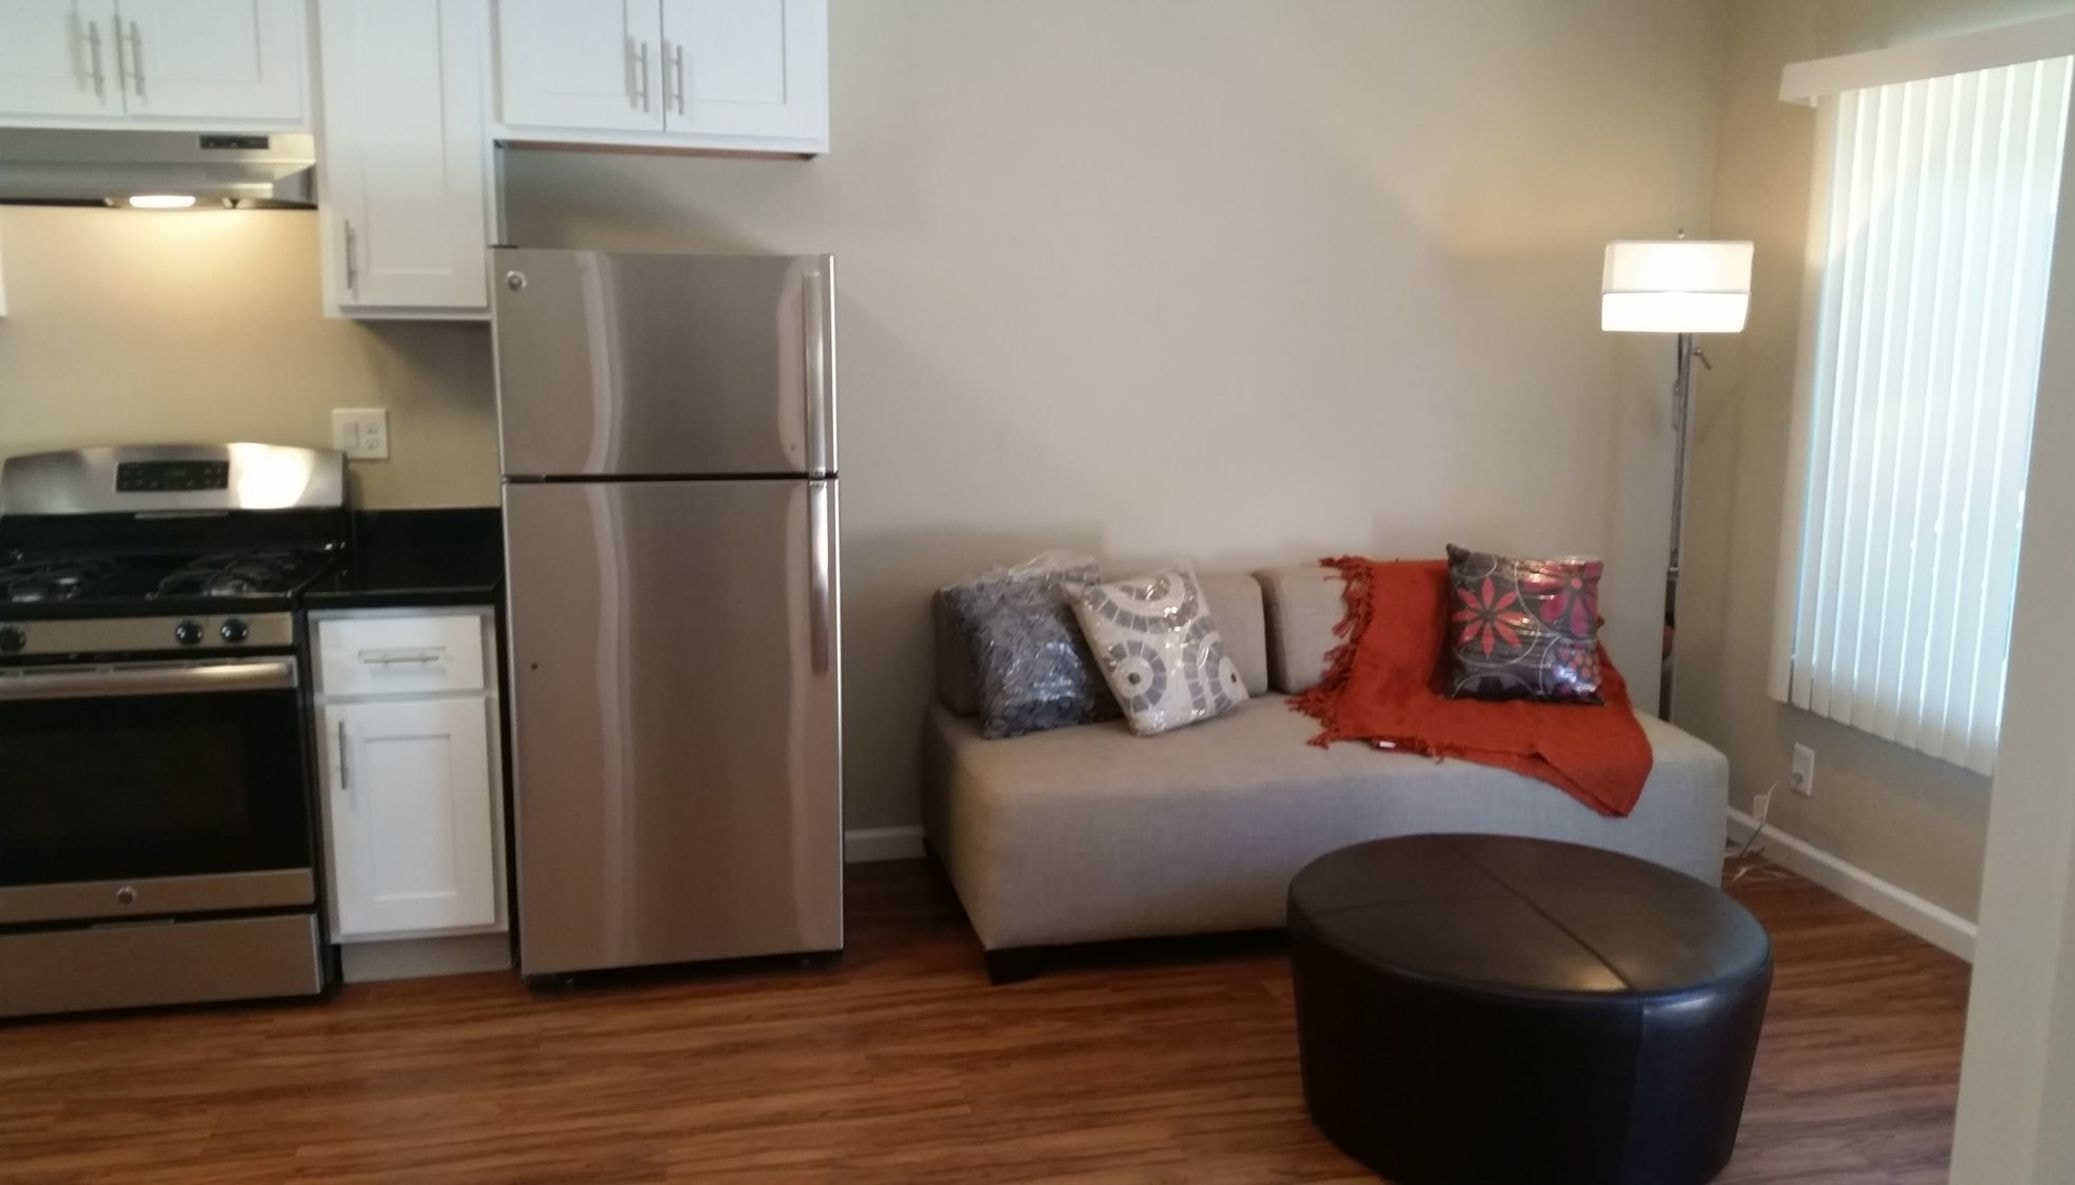 20 Best Apartments In Mountain View CA with pictures p 2